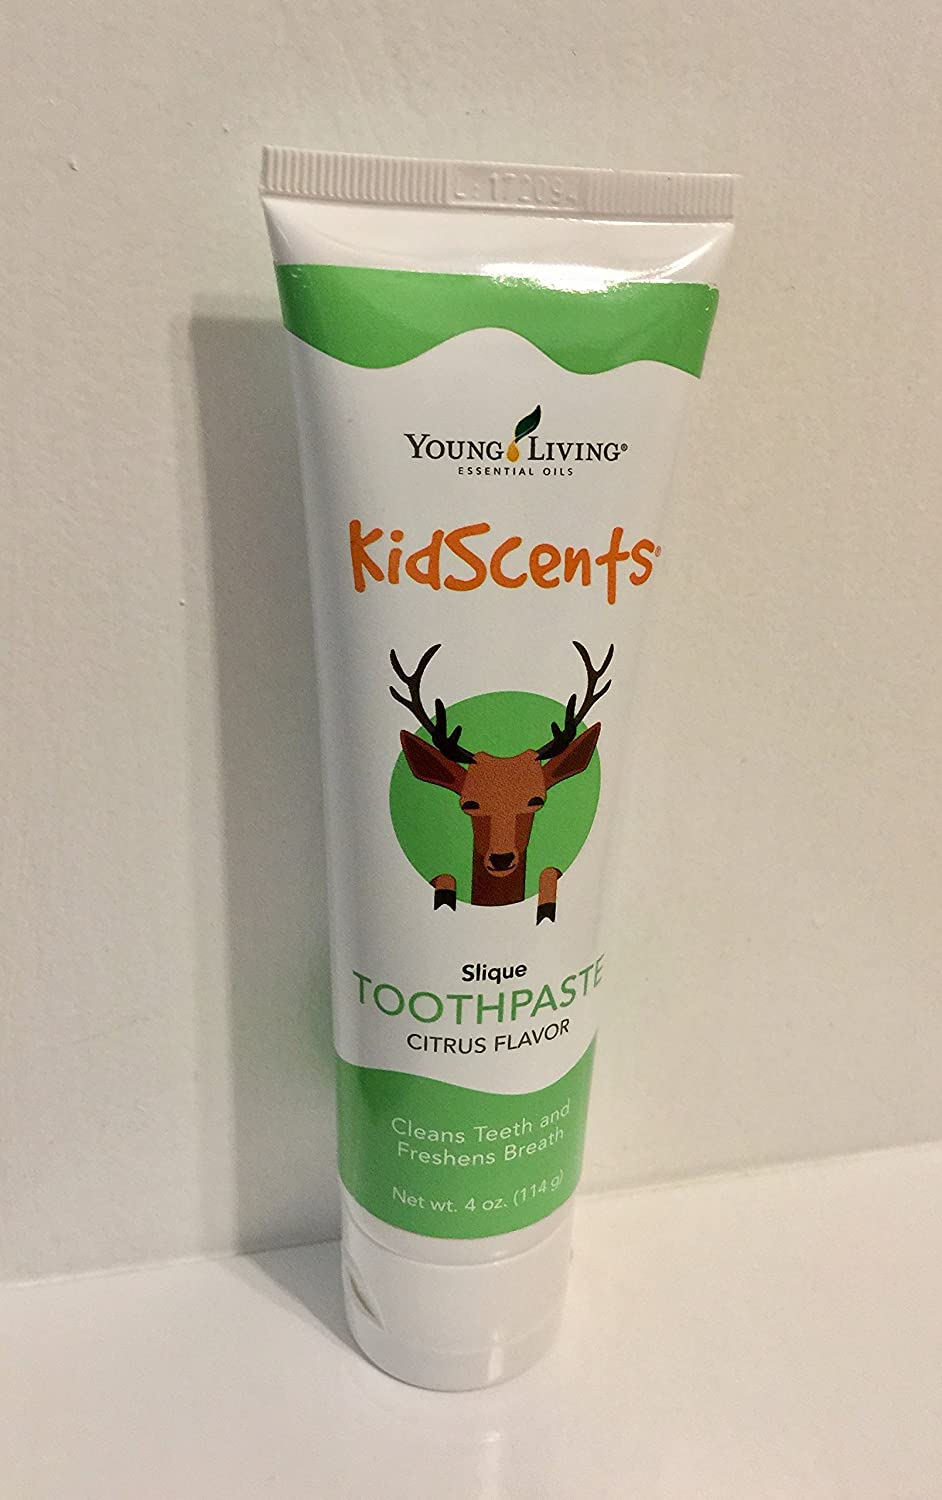 KidScents Slique Toothpaste - 4 oz by Young Living Essential Oils